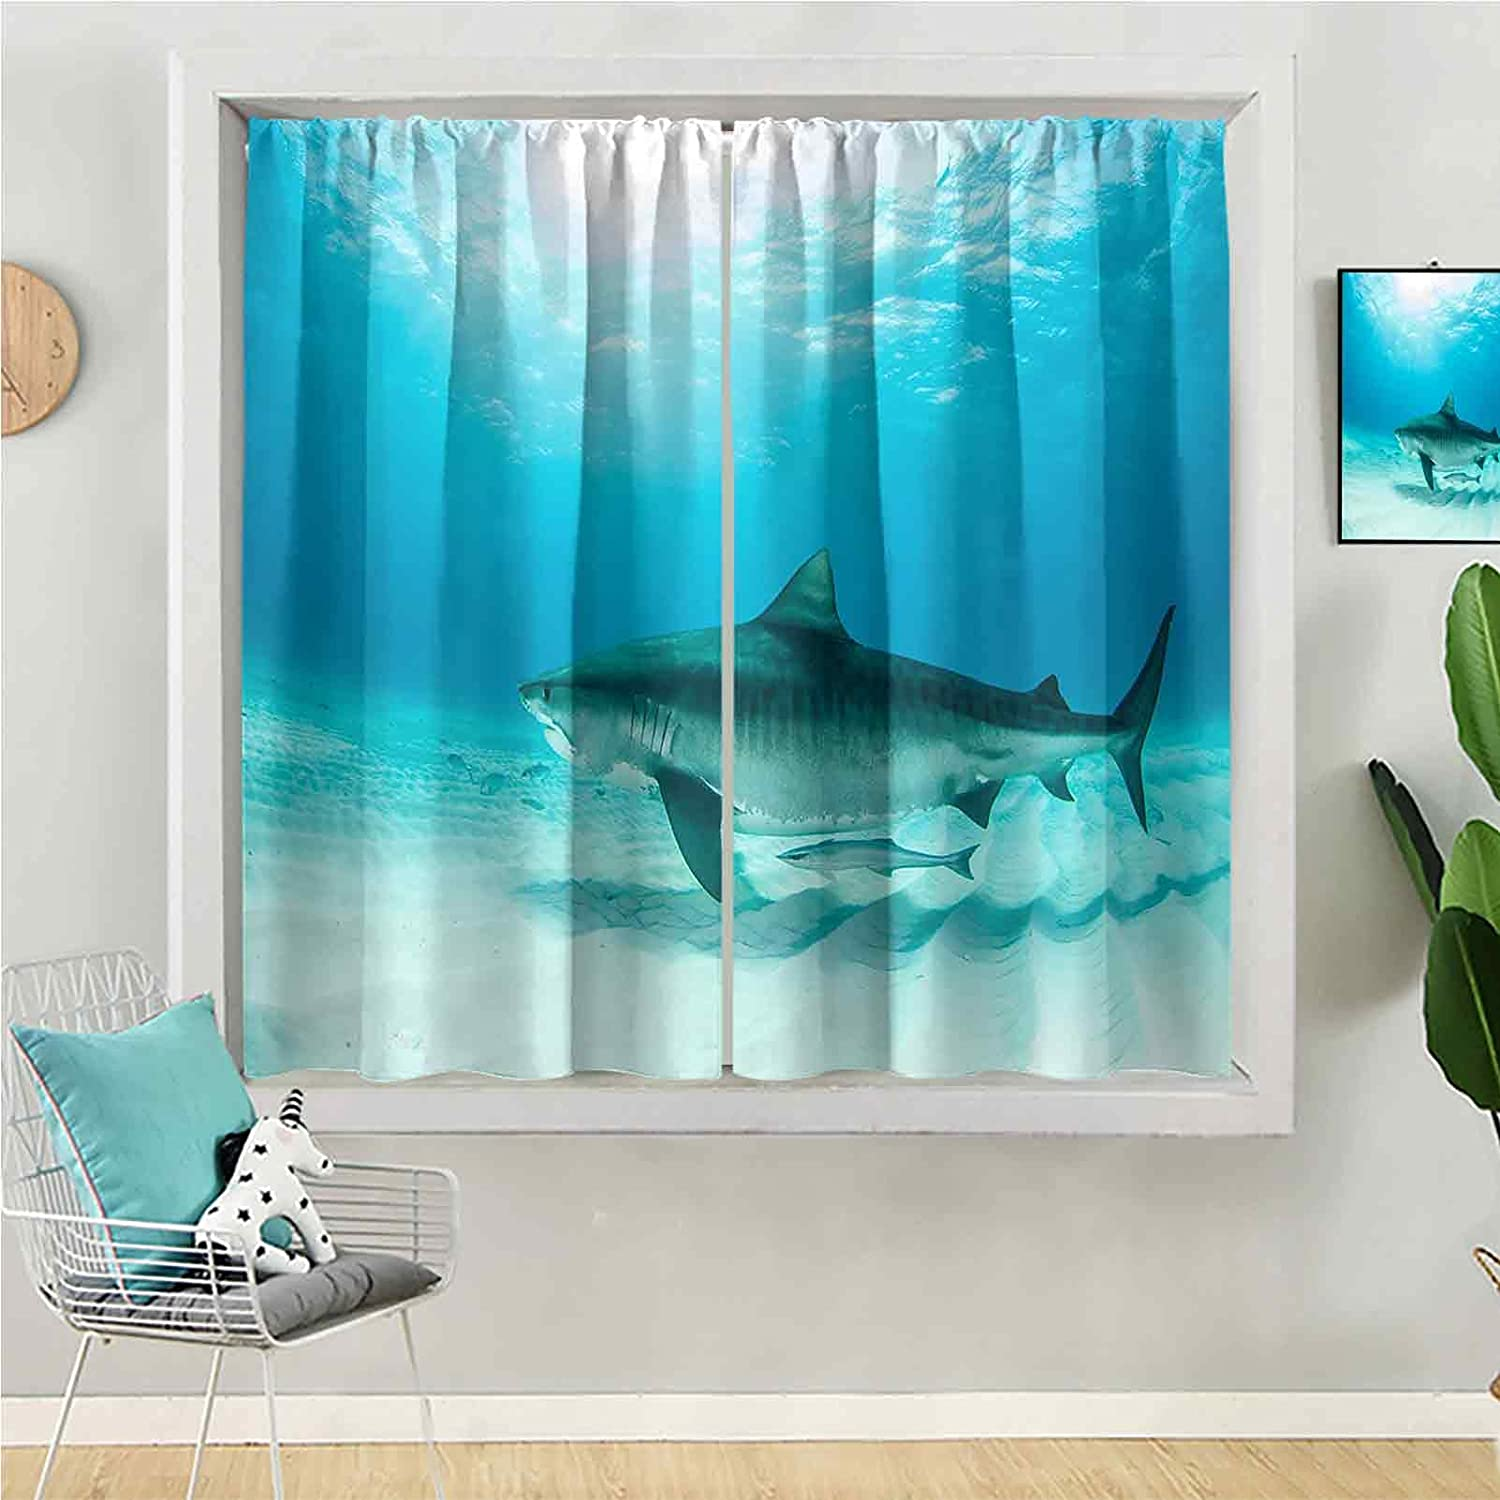 Blackout Curtain 63 inches Long Window Be Max Tulsa Mall 73% OFF Kids for Panel